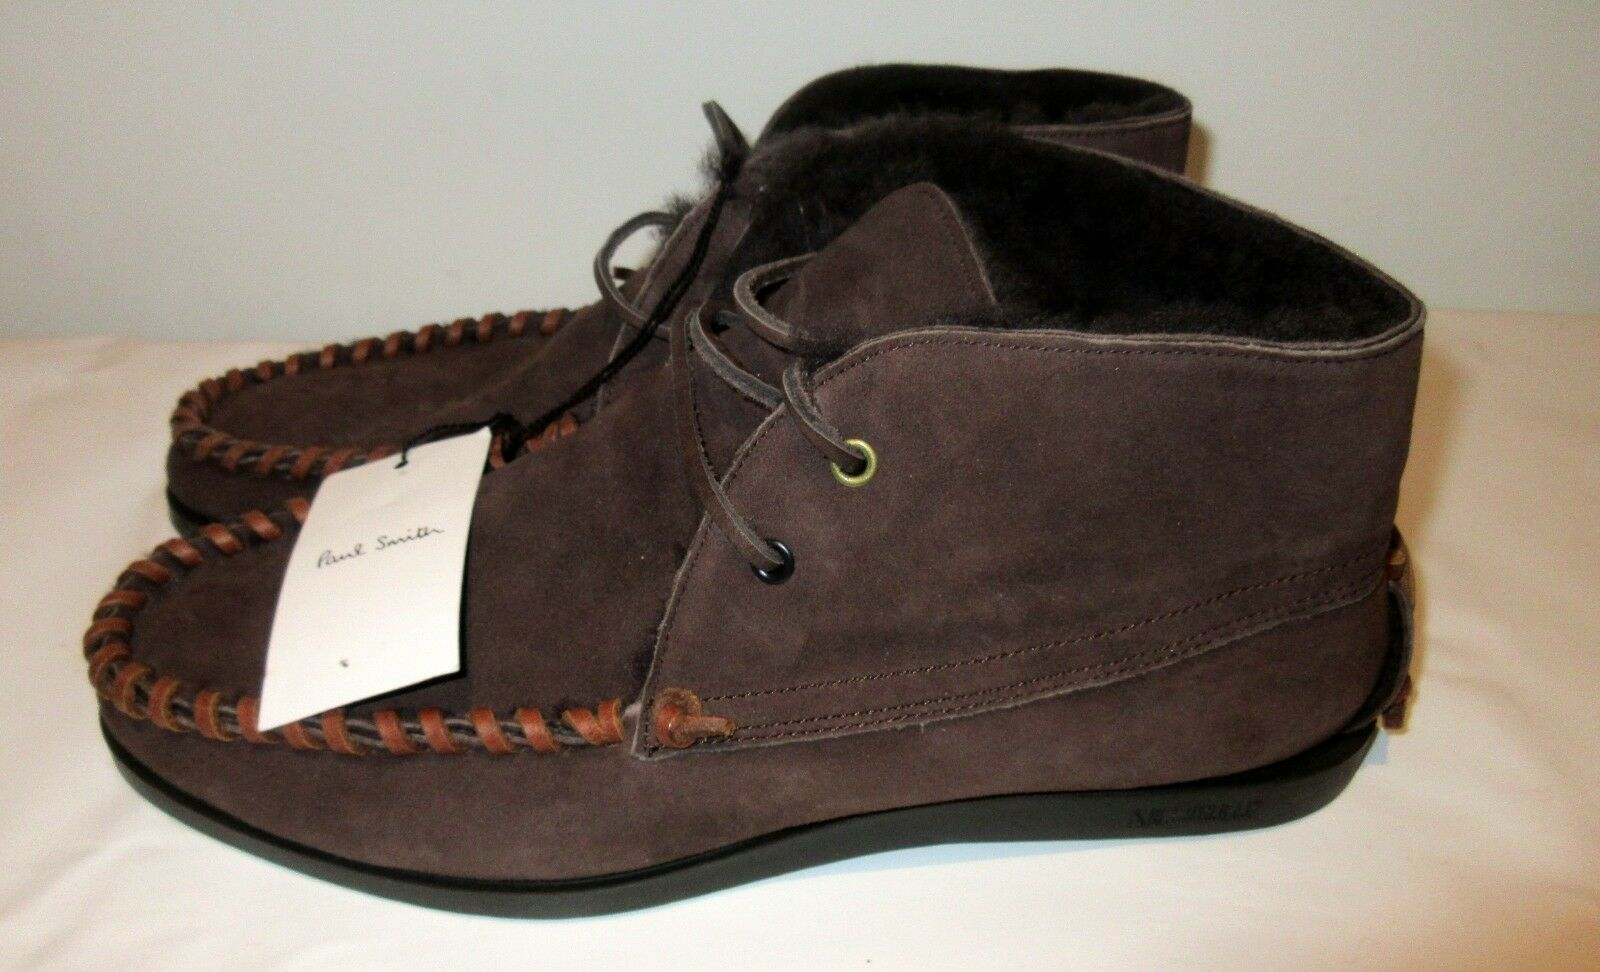 Mens boots PAUL SMITH j321 Fur Lined Suede Ankle Lace-up  Brown  uk 8 eu 41